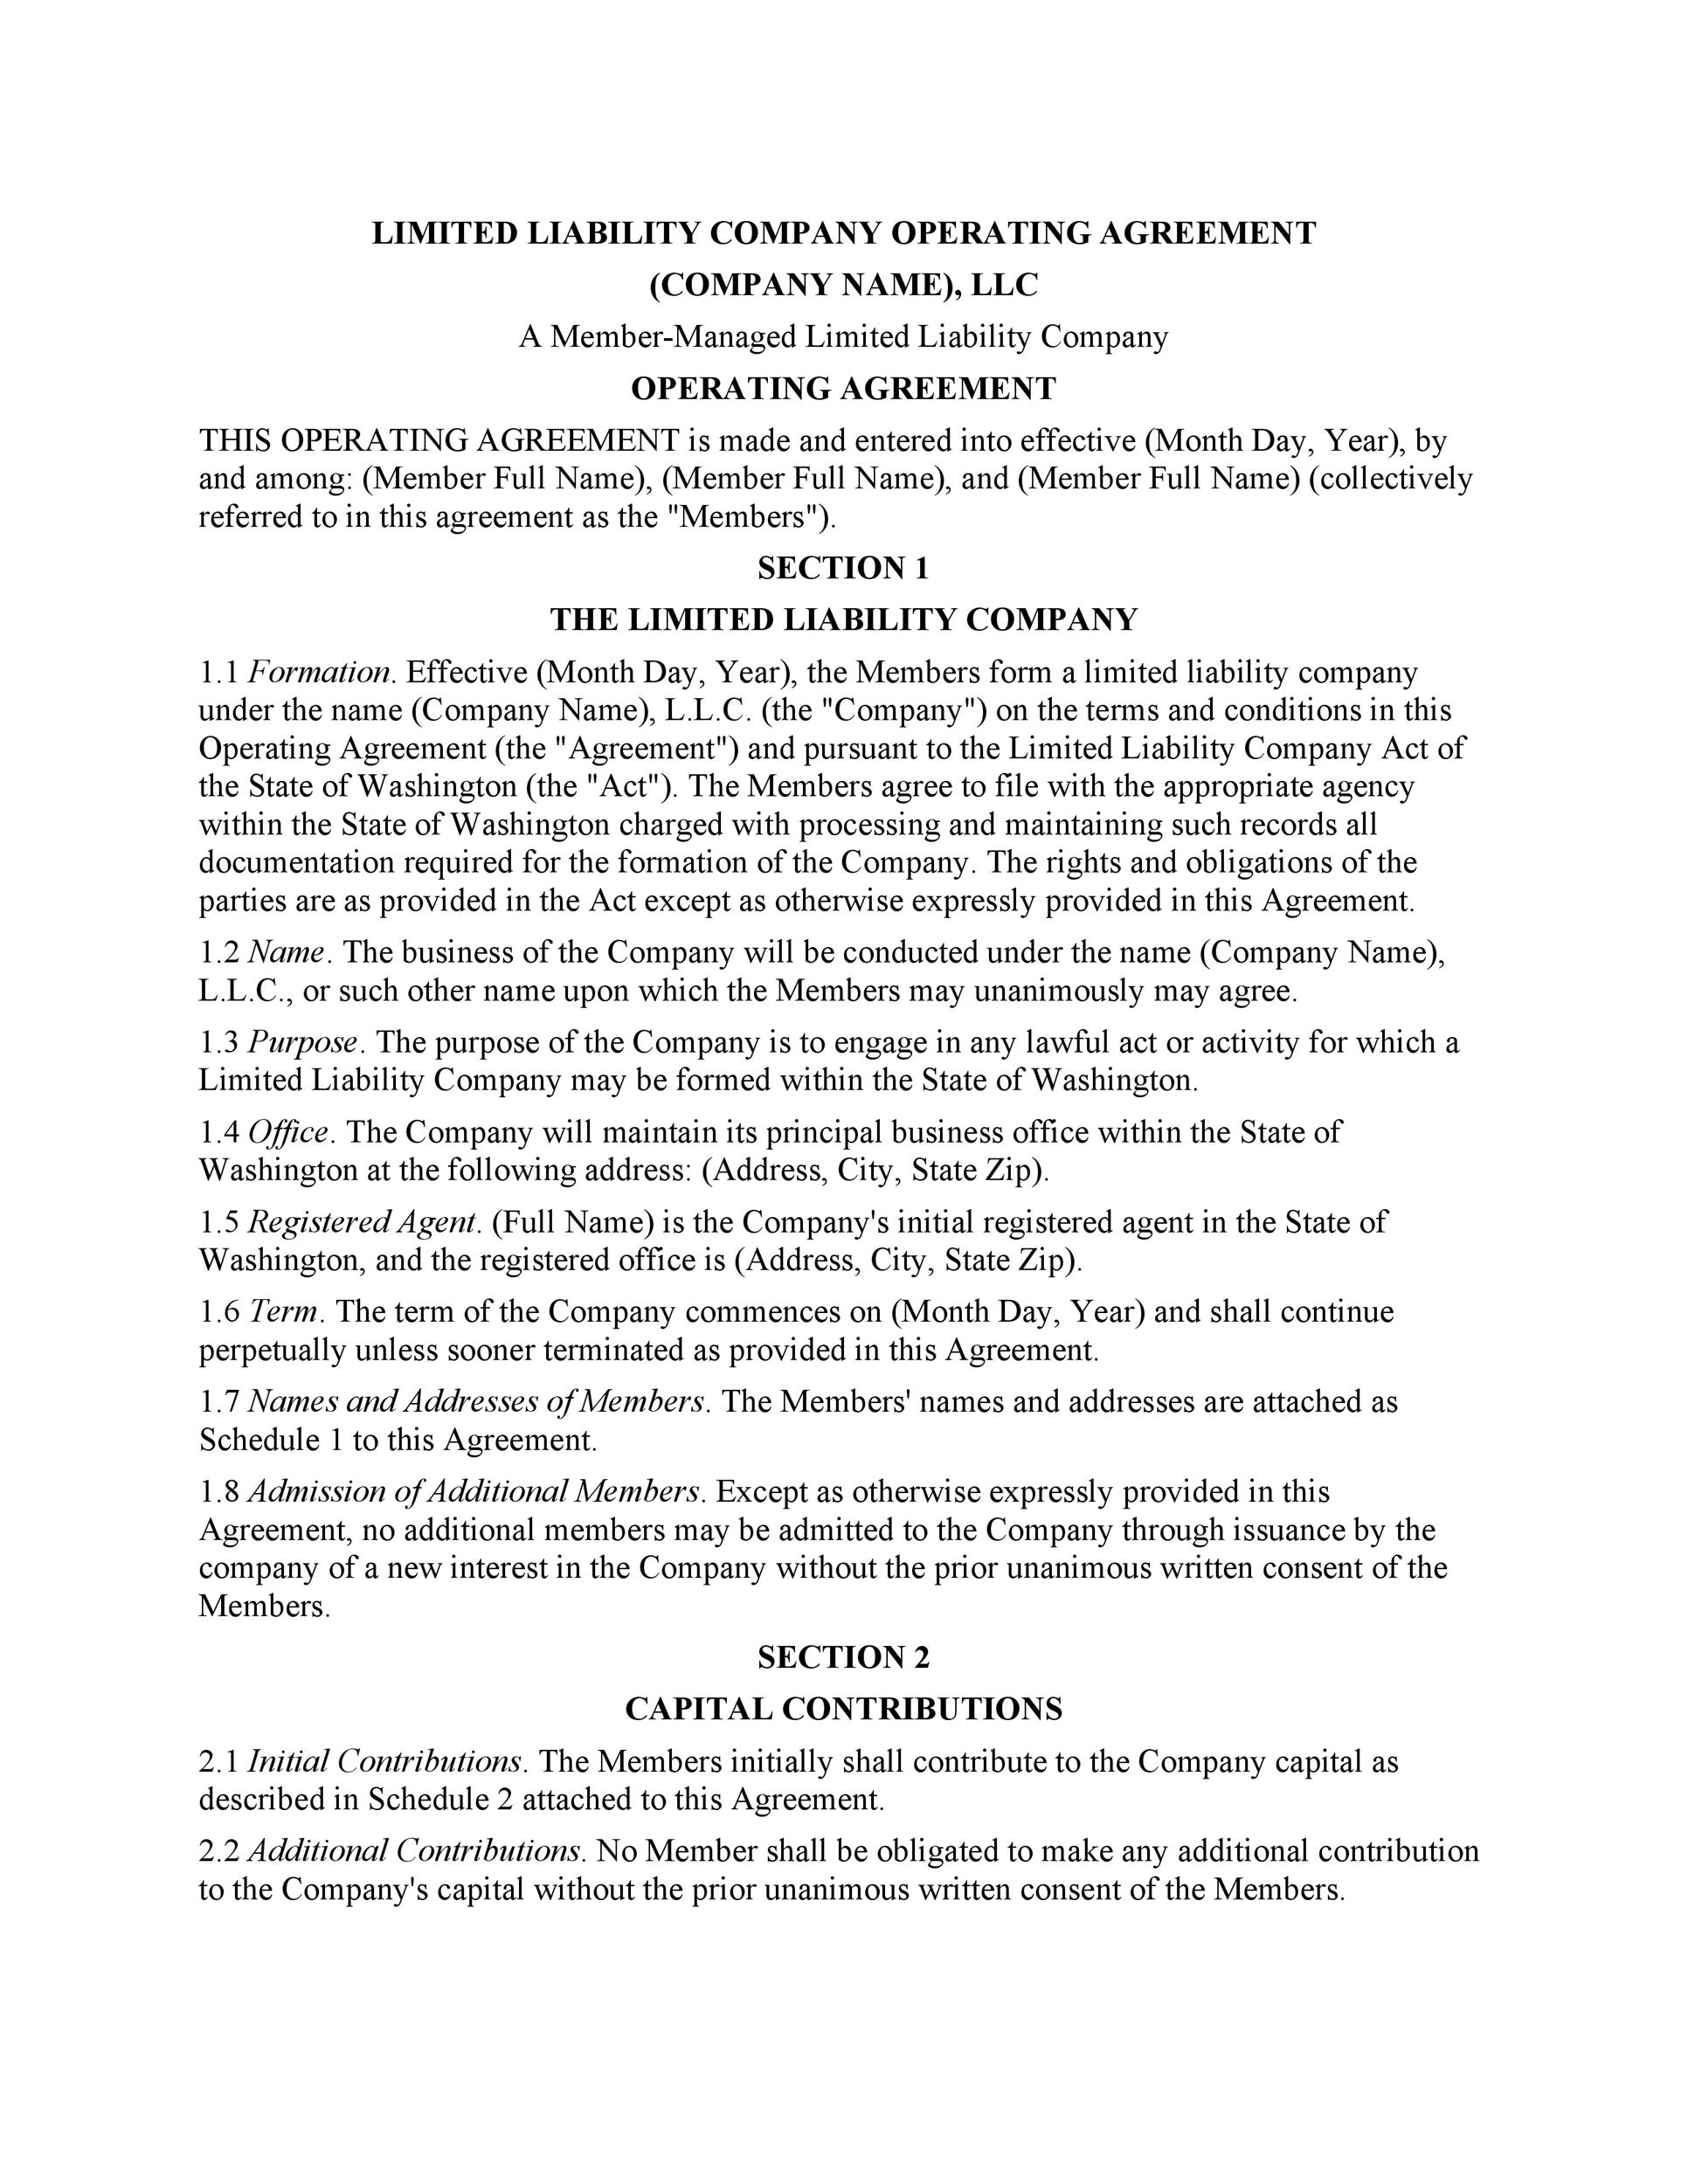 Professional LLC Operating Agreement Templates Template Lab - Basic llc operating agreement template